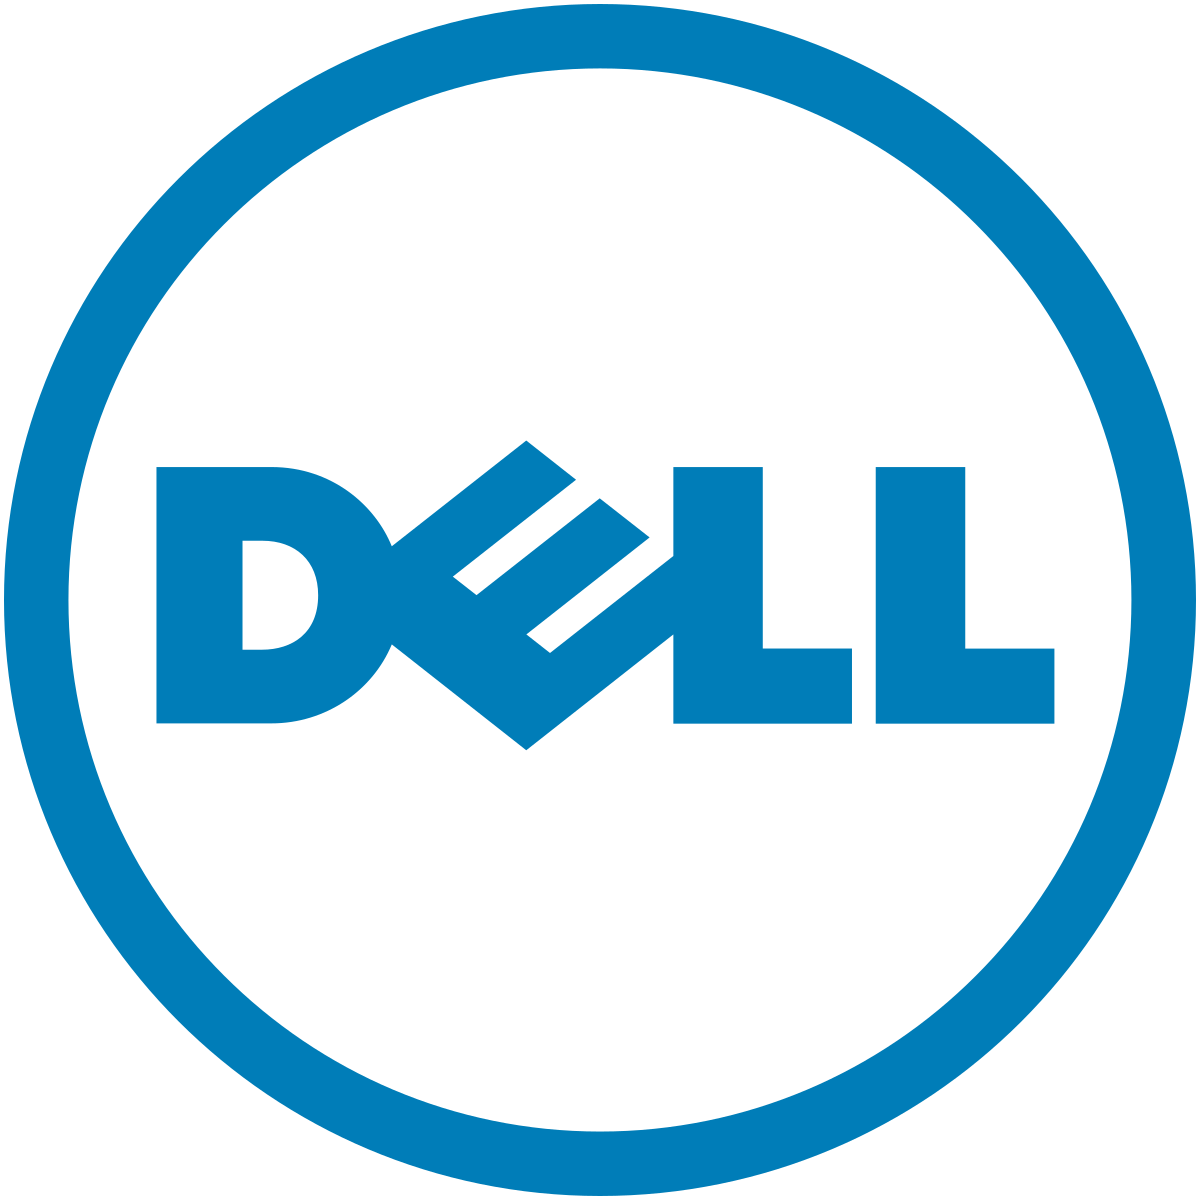 Dell Is Still On Top With Lean Six Sigma